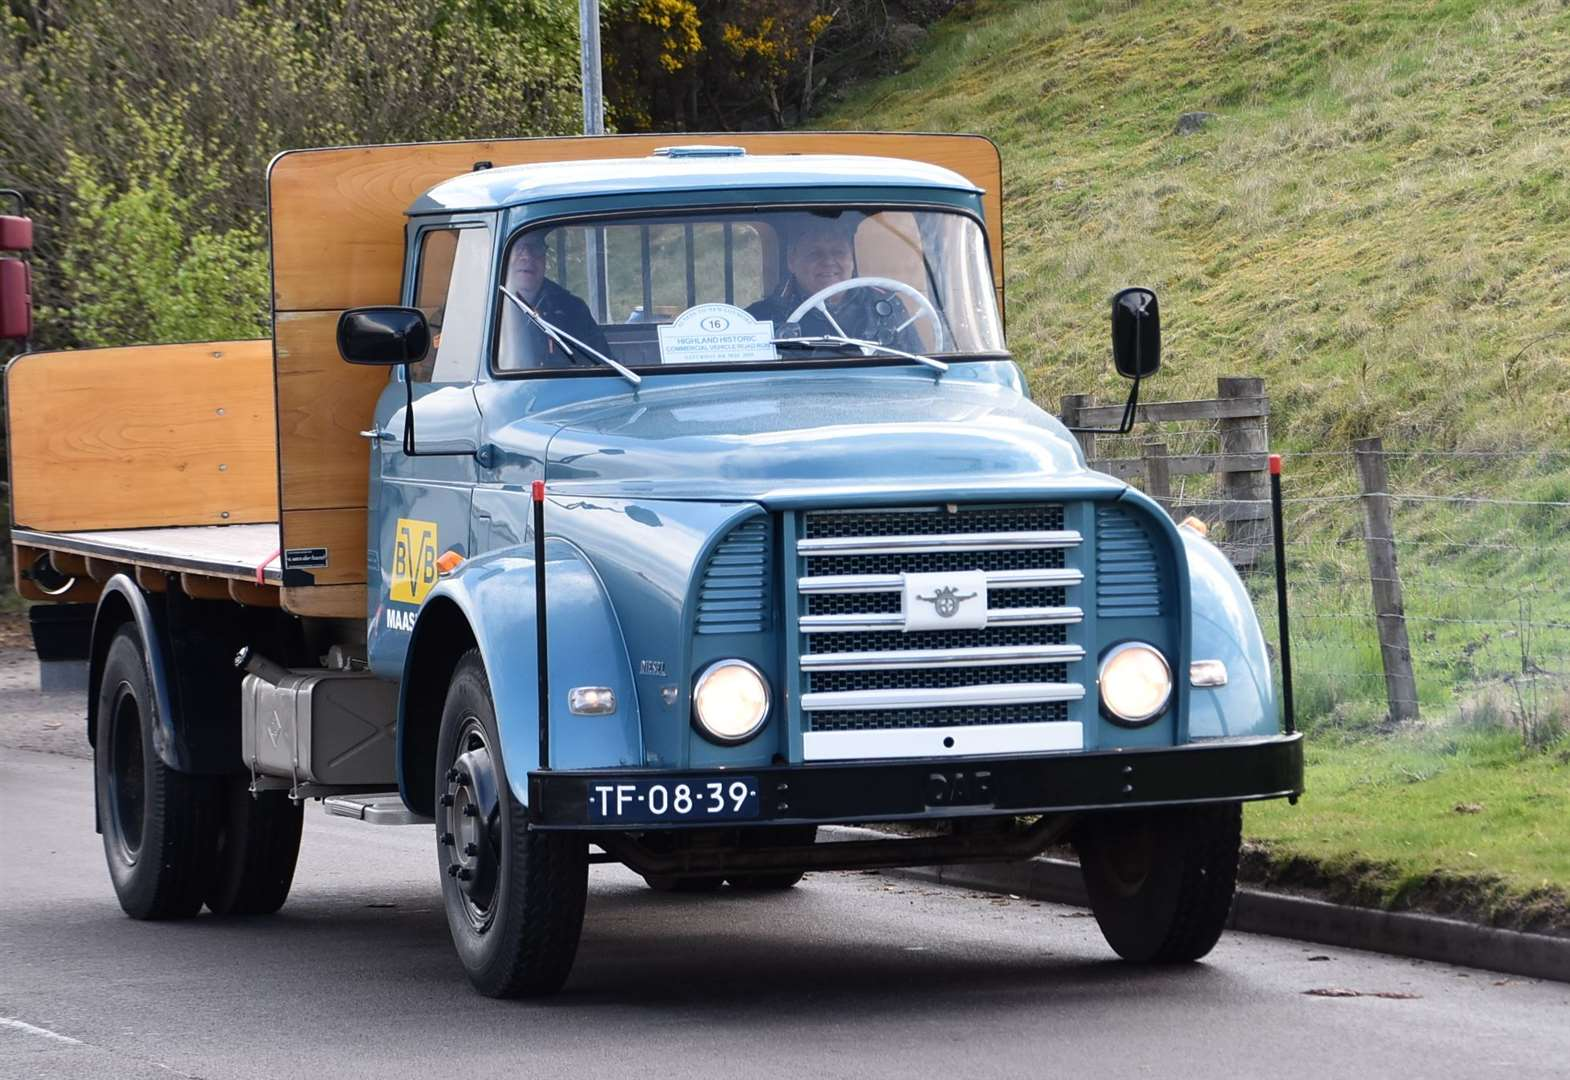 Final destination of next Highland commercial vehicle run revealed as event hailed great success